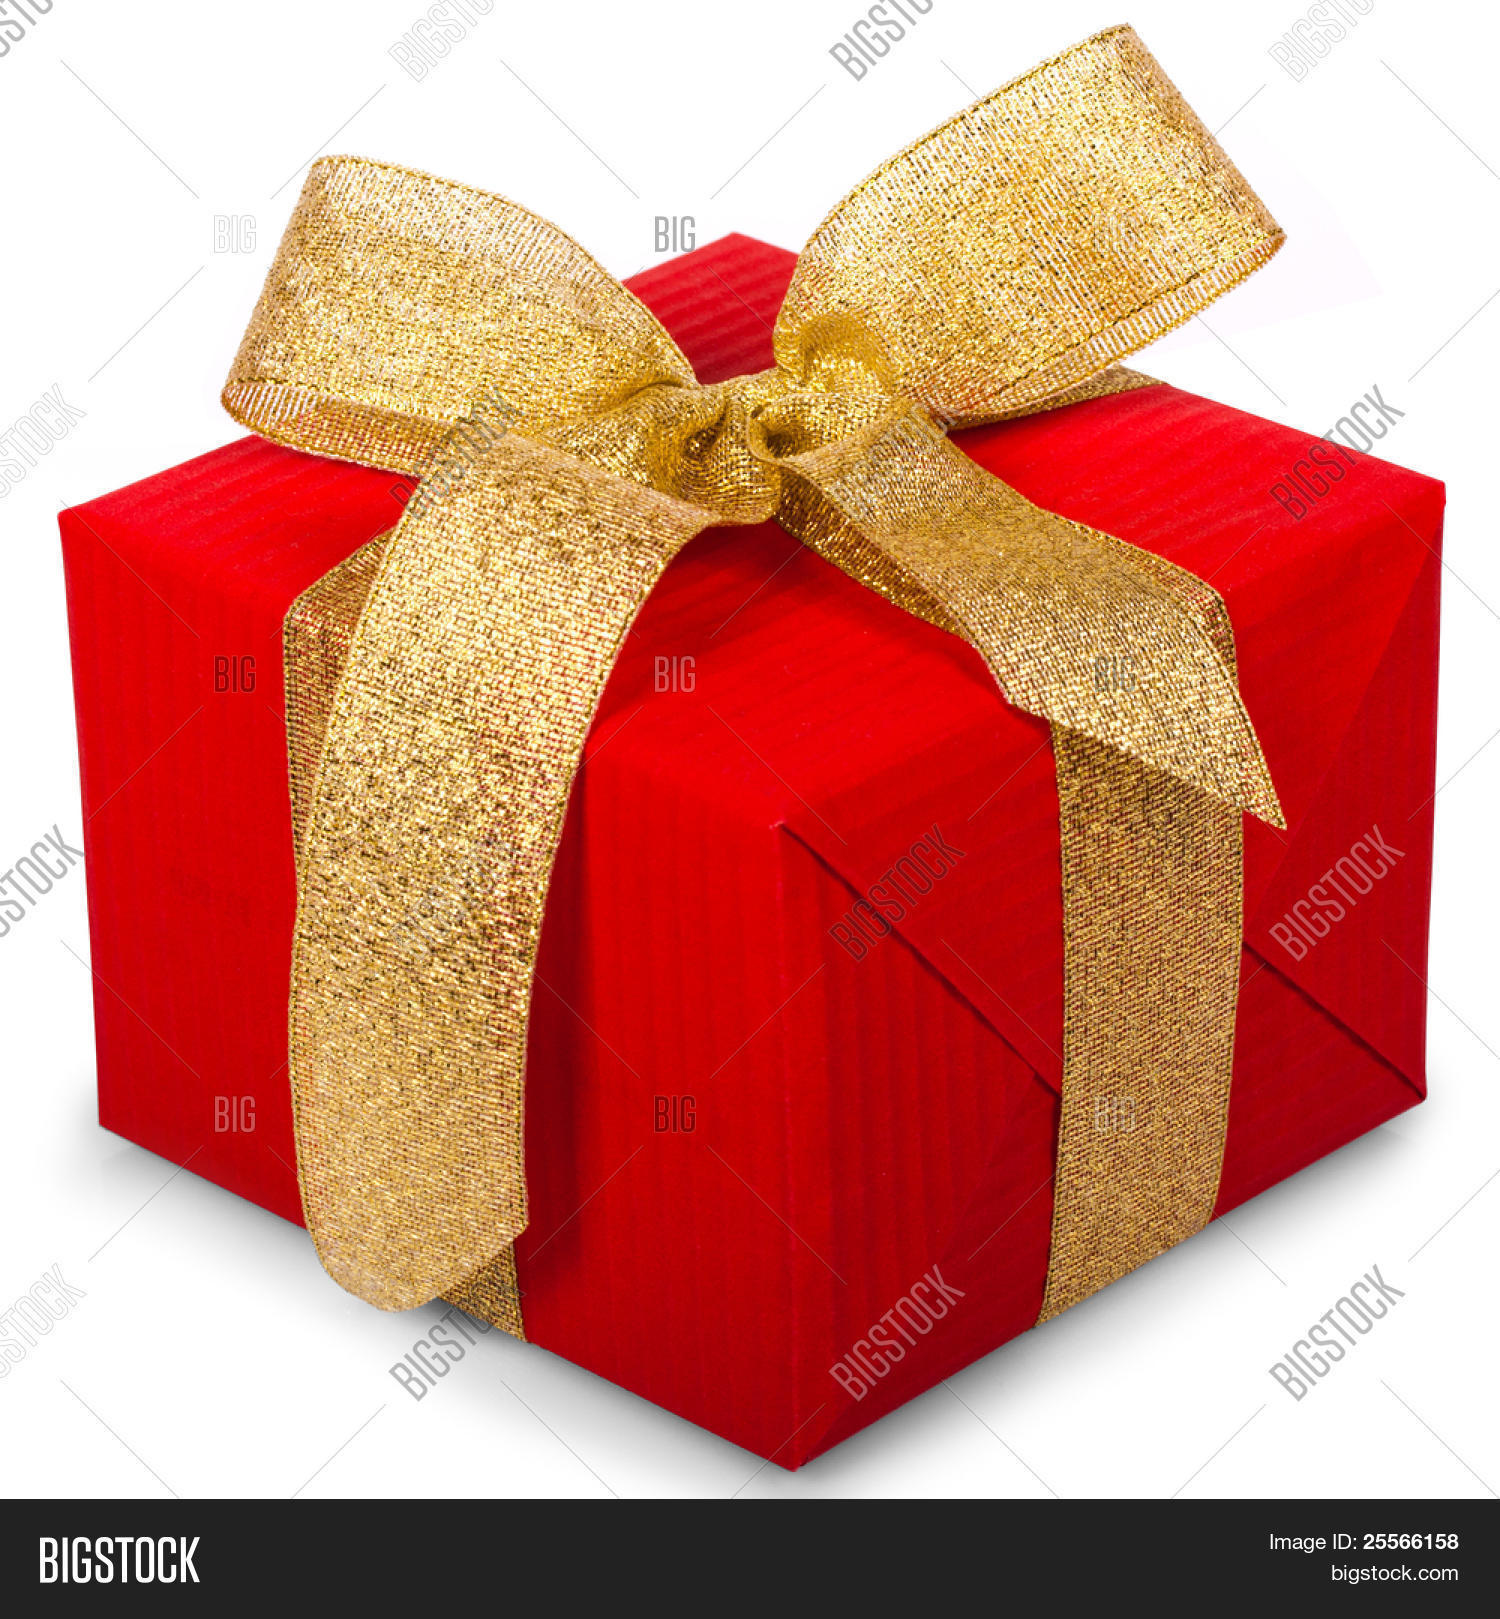 Christmas Gift Box Image & Photo (Free Trial) | Bigstock